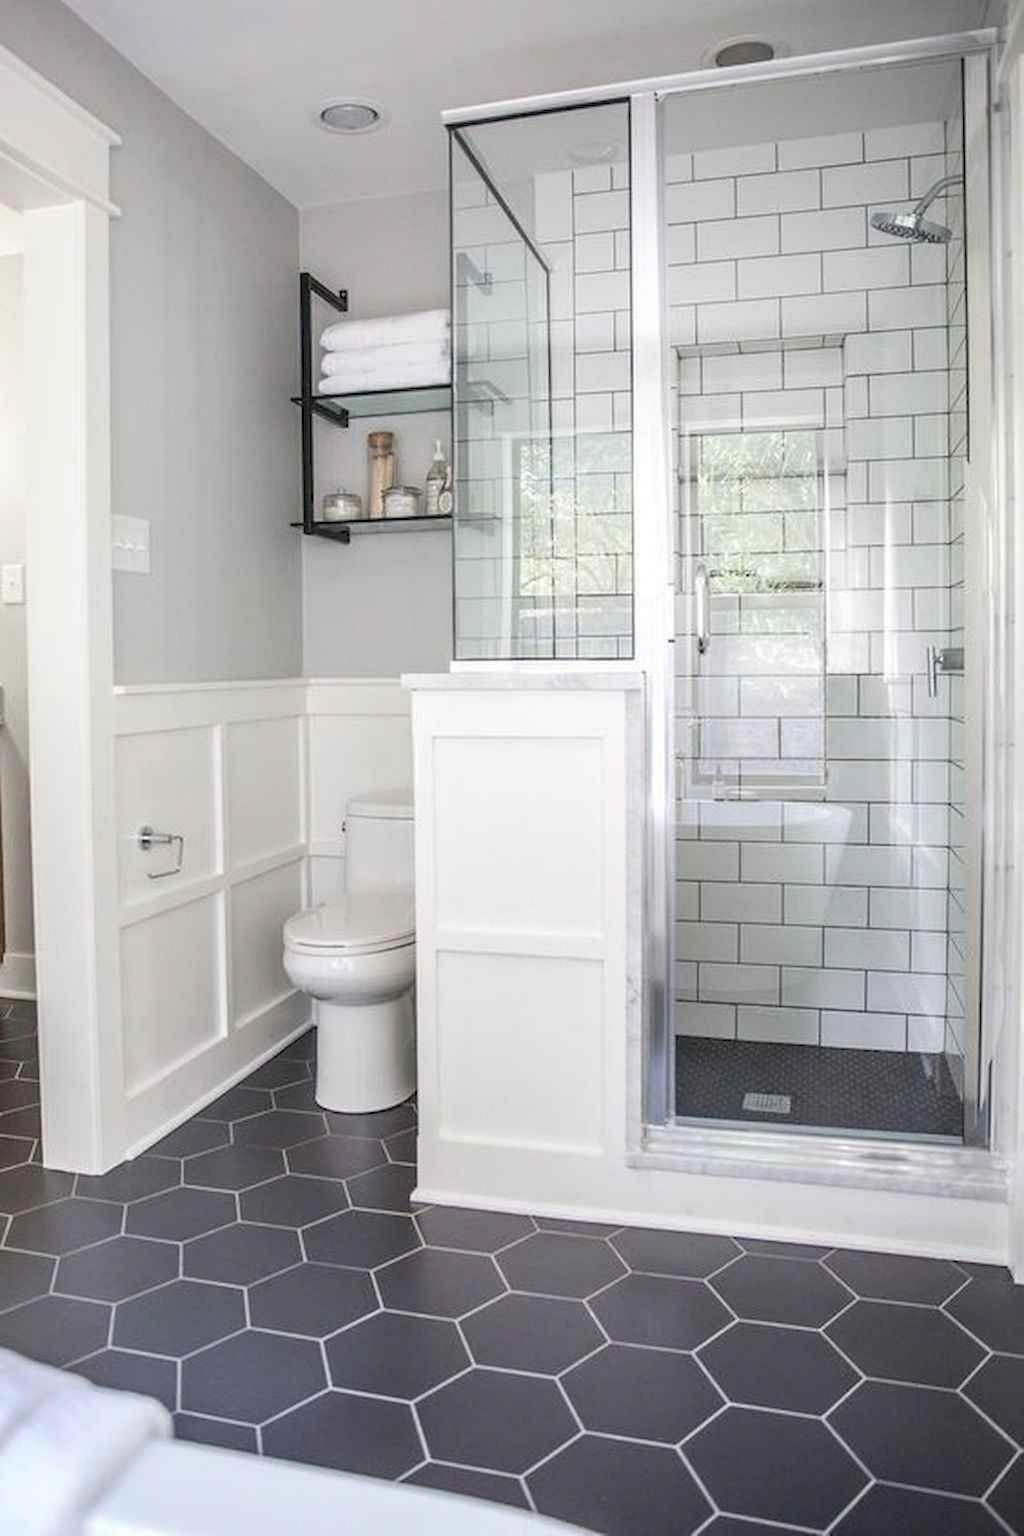 If You Re Only Repainting One Space Of Your Home You Can Pull Out Of Employing Expert Painters Full Bathroom Remodel Bathroom Remodel Master Bathrooms Remodel